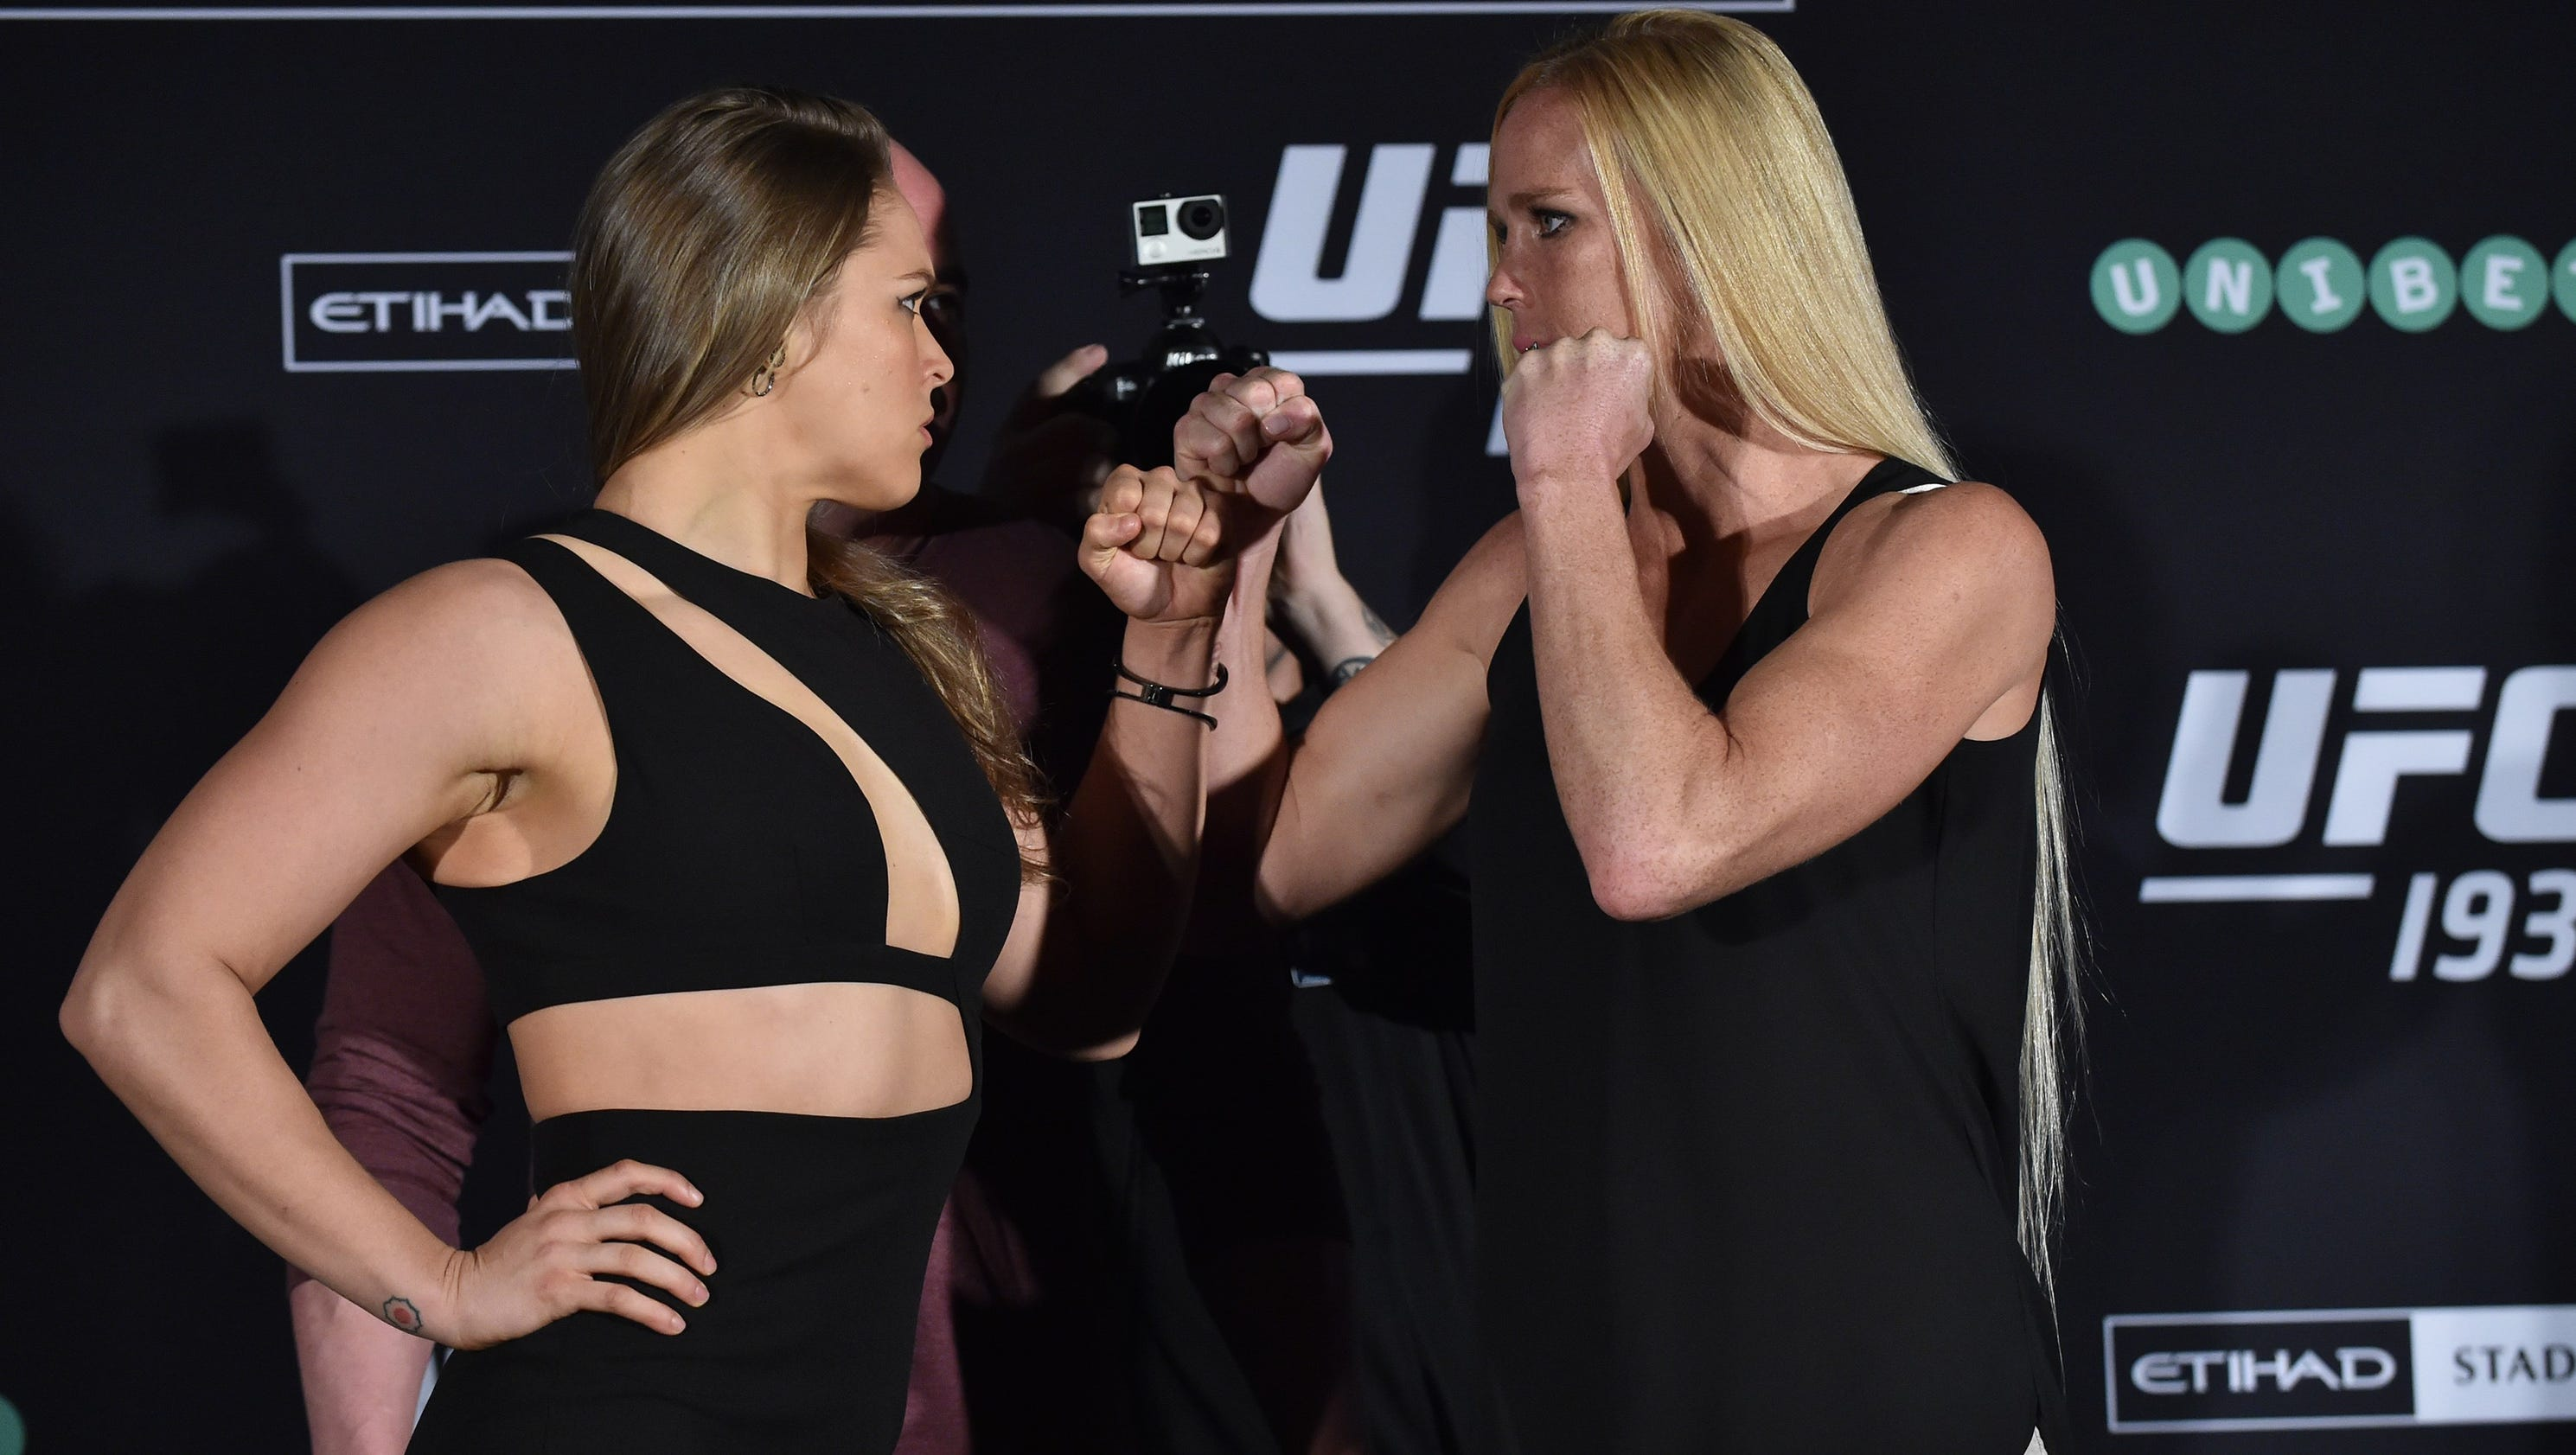 how to get the ufc fight on the fire stick